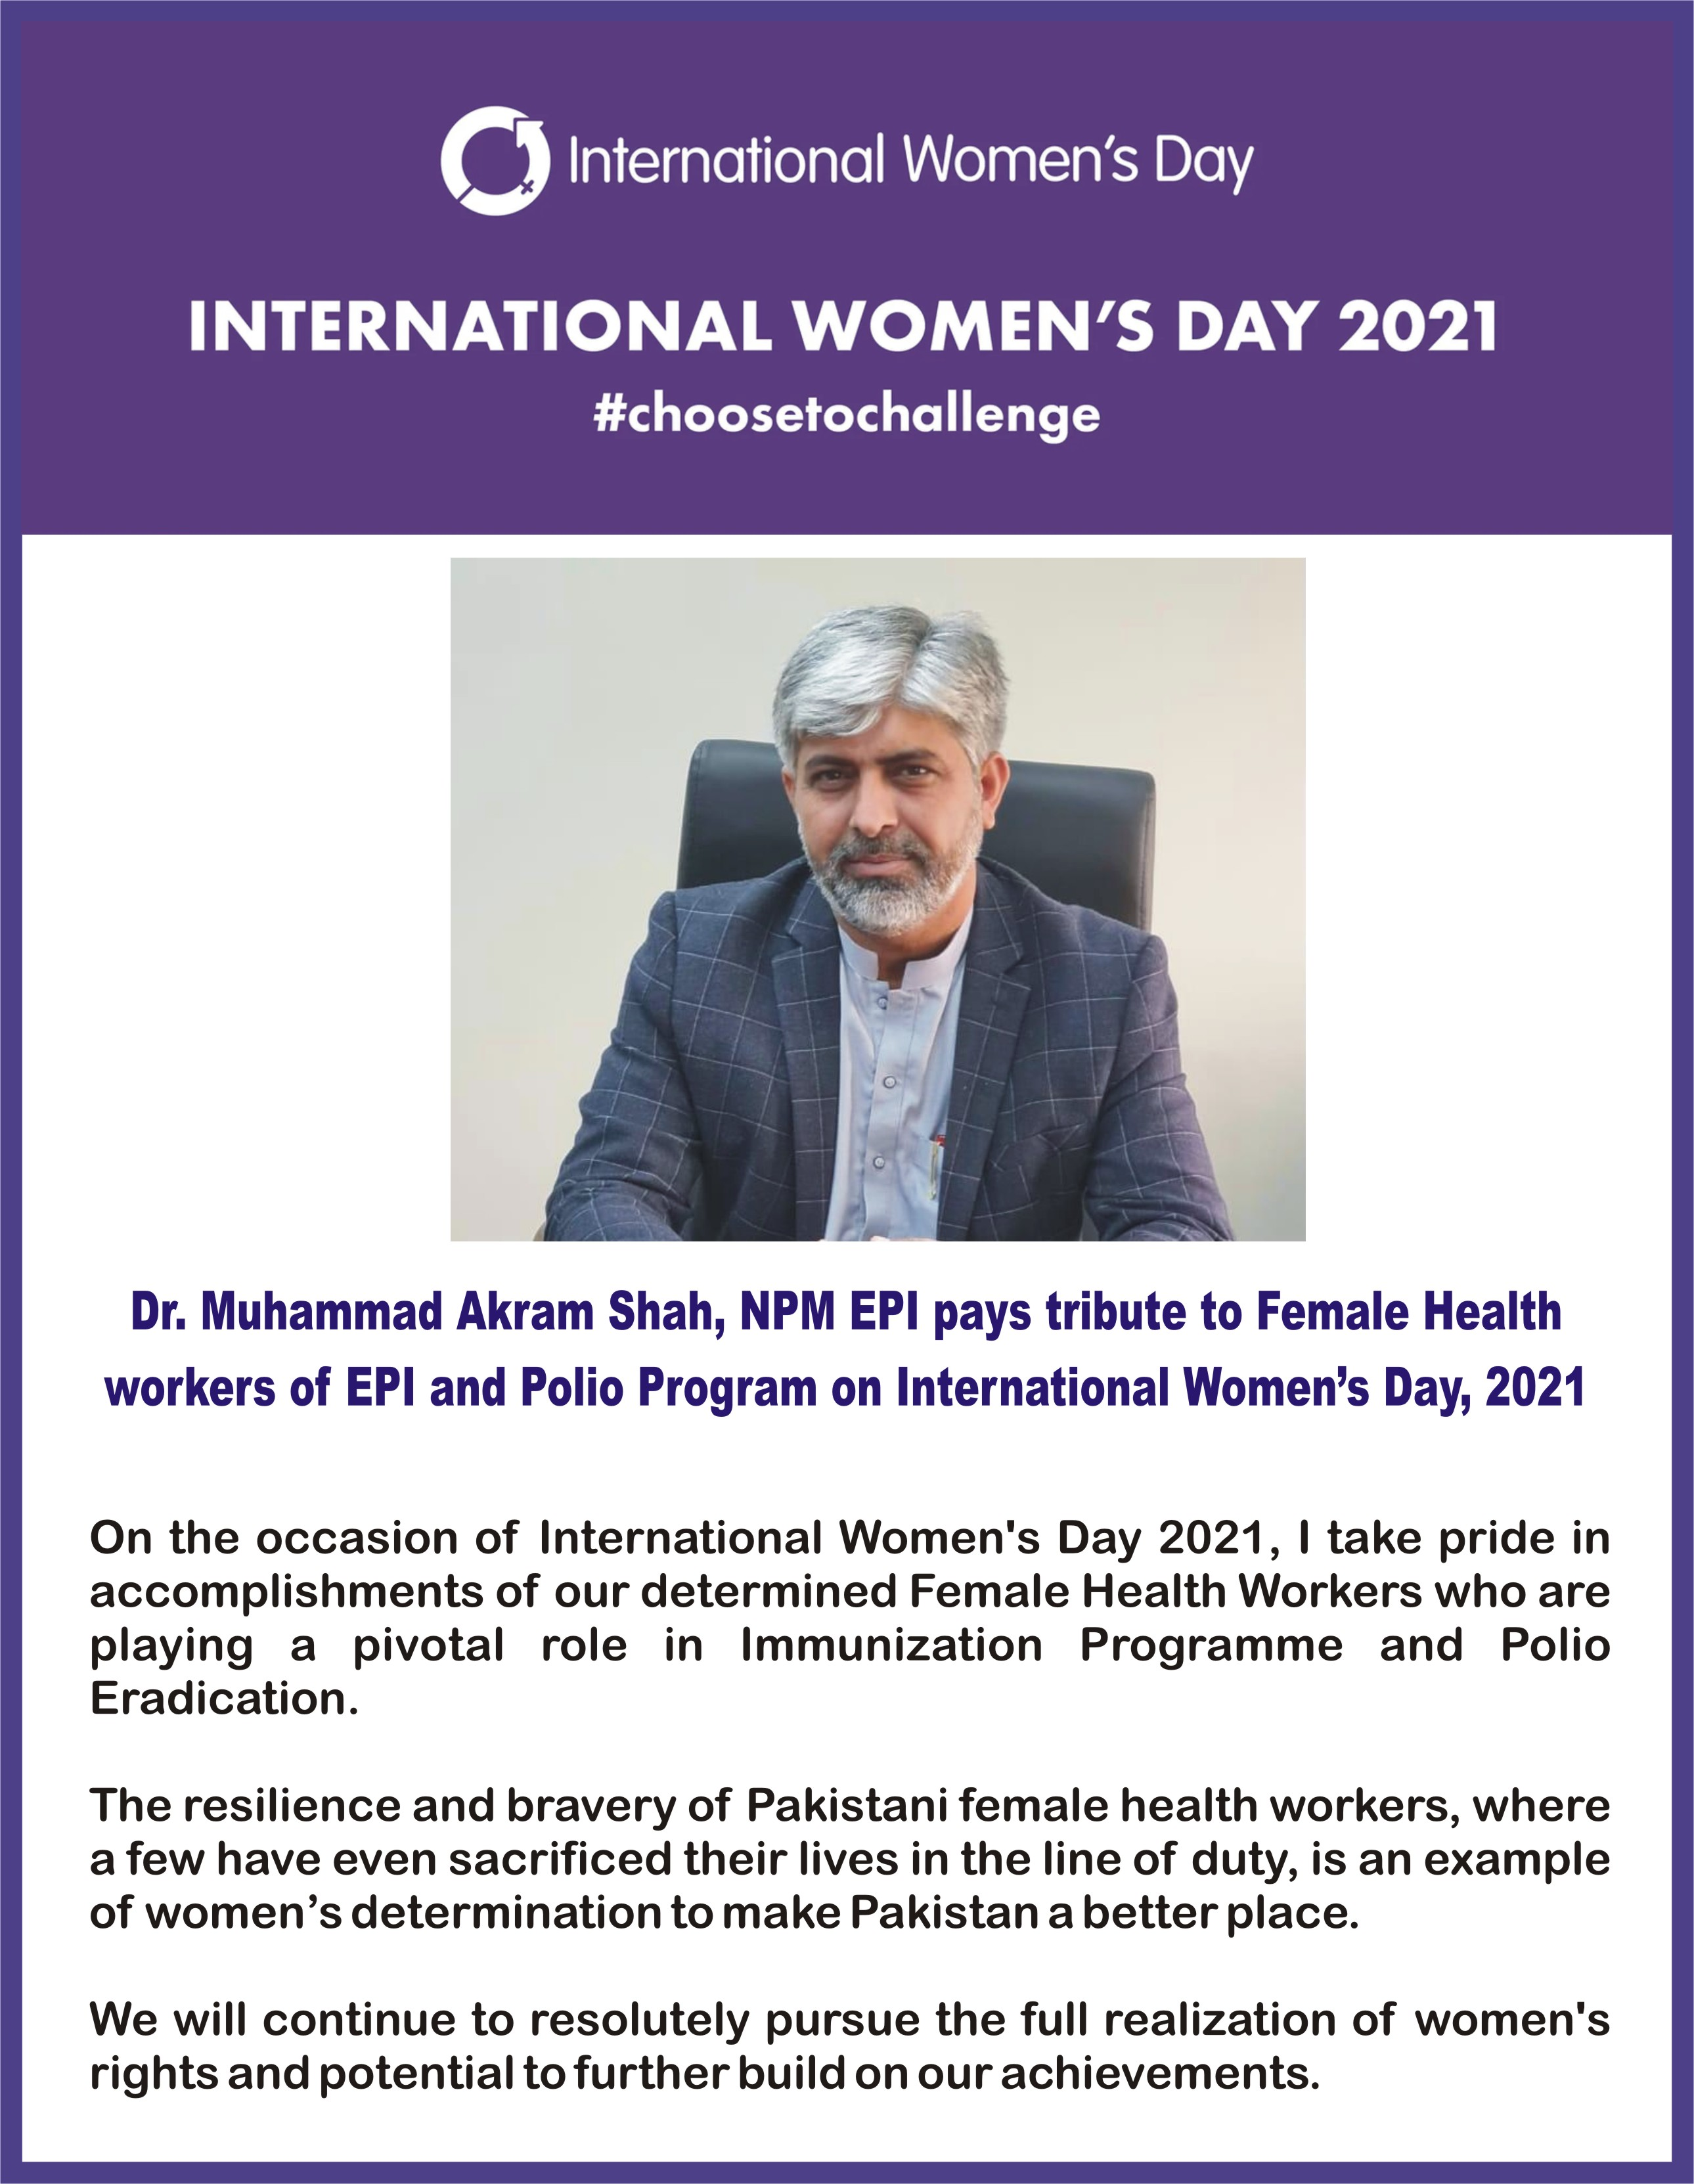 Dr. Muhammad Akram Shah, NPM EPI paid tribute to female health workers on International Women's Day, 8th March 2021